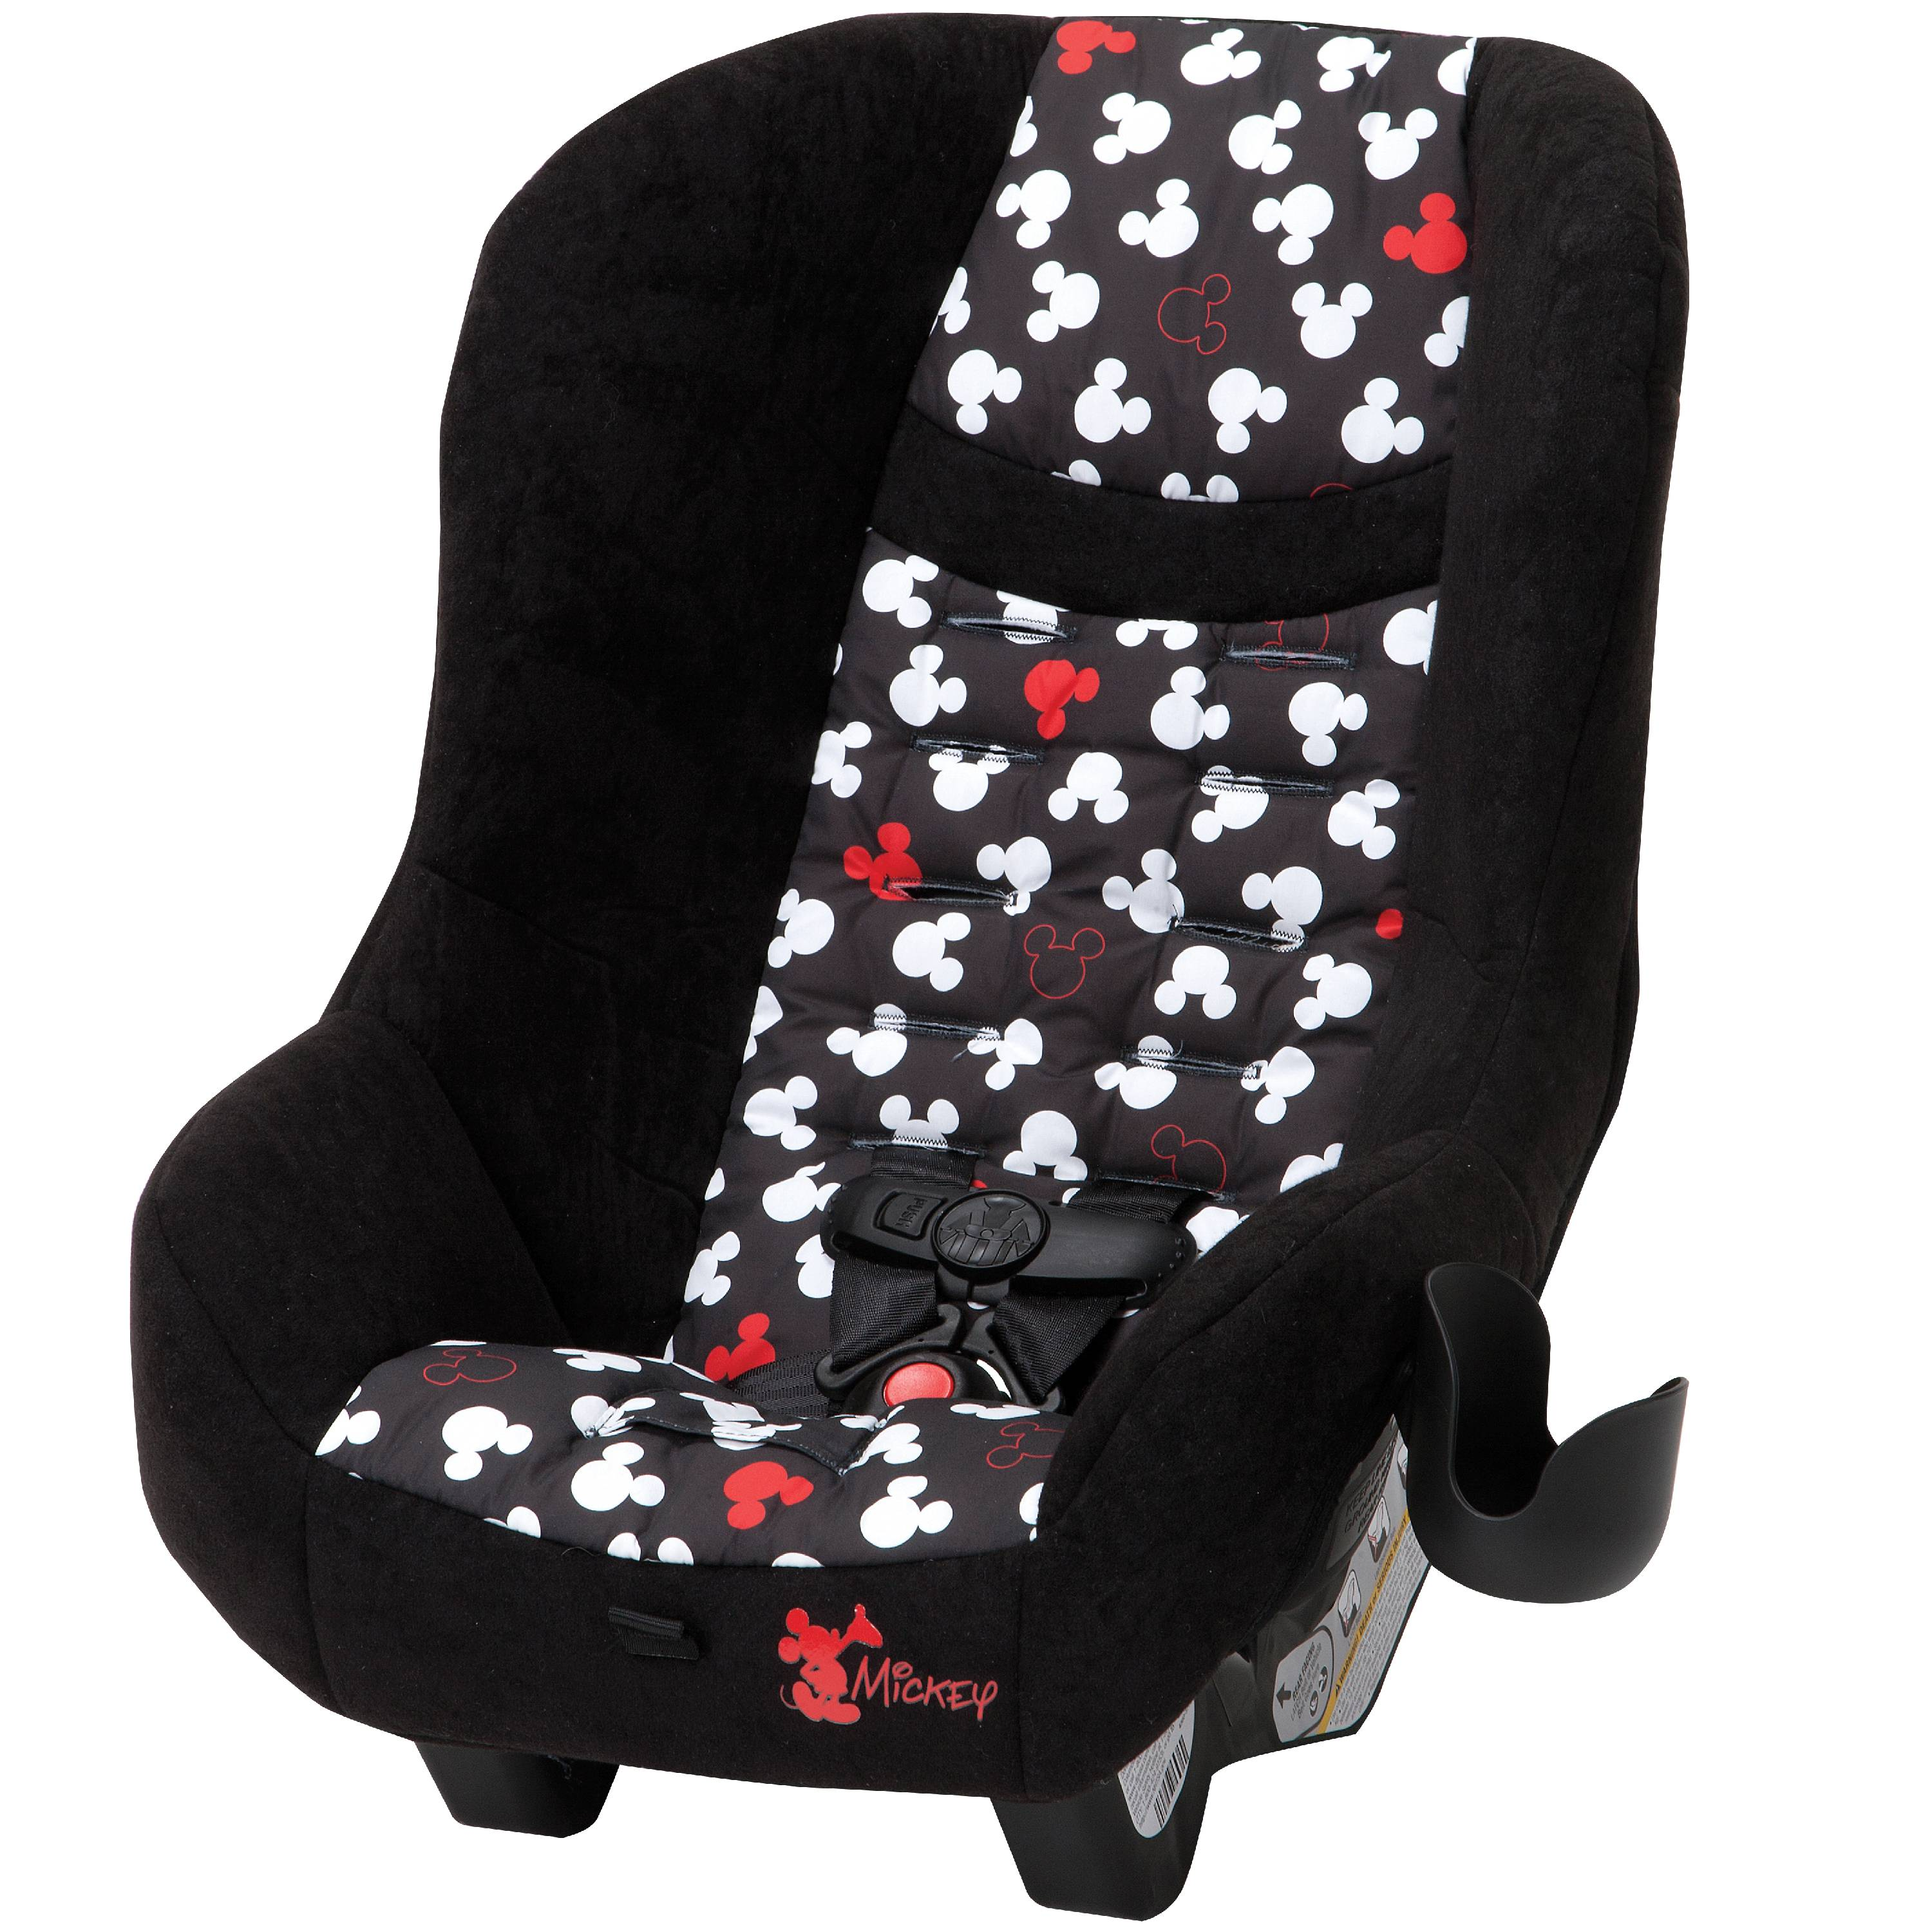 Disney Scenera NEXT Convertible Car Seat, Choose Your Character